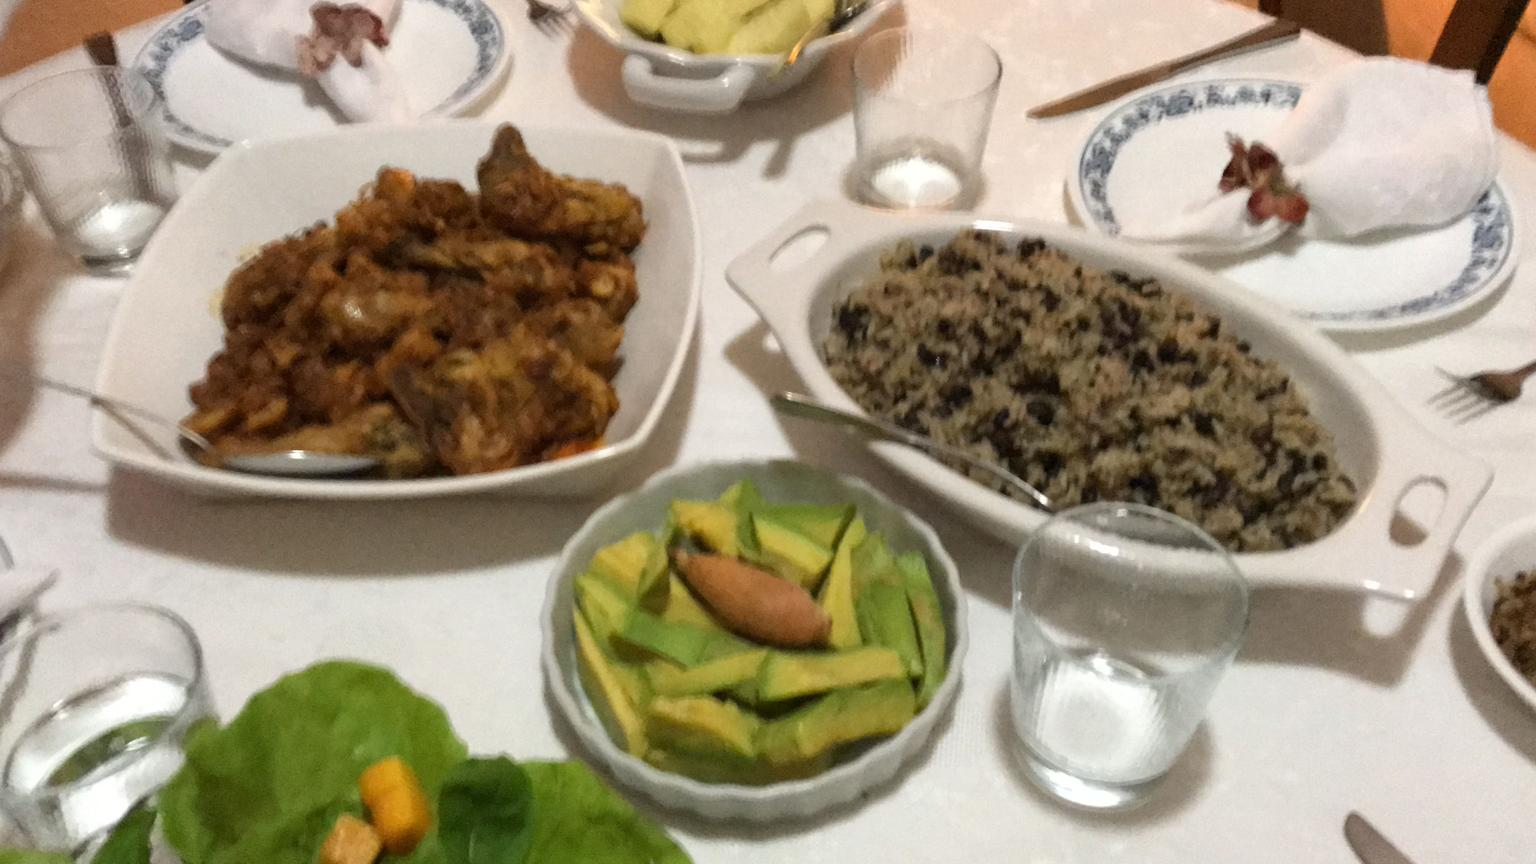 MÁS FOTOS, Cook Traditional Dominican Cuisine with a Charming Grandmother in Santo Domingo